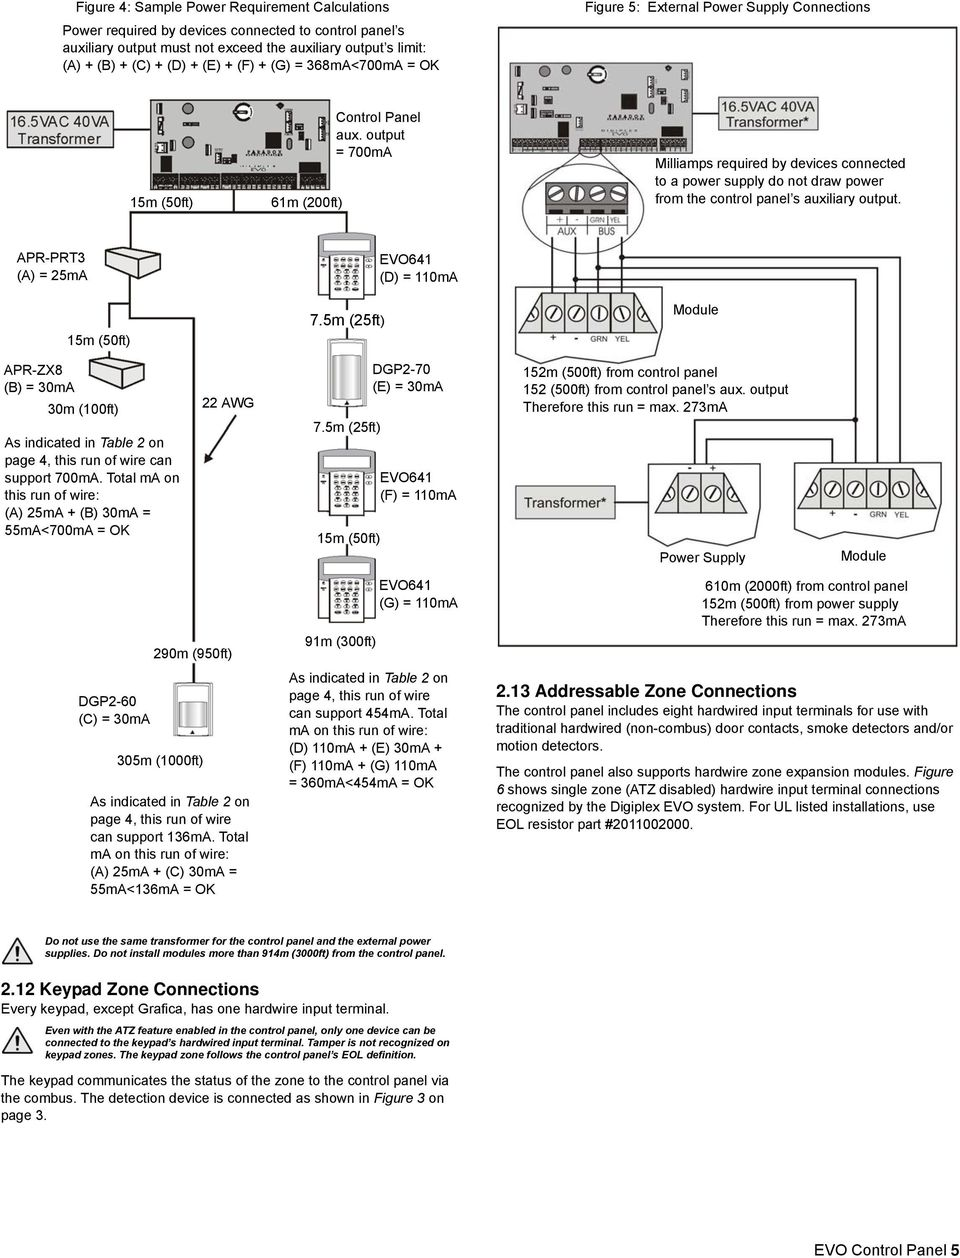 High Security And Access System Evo48 V1 20 Evo192 V Pdf Free